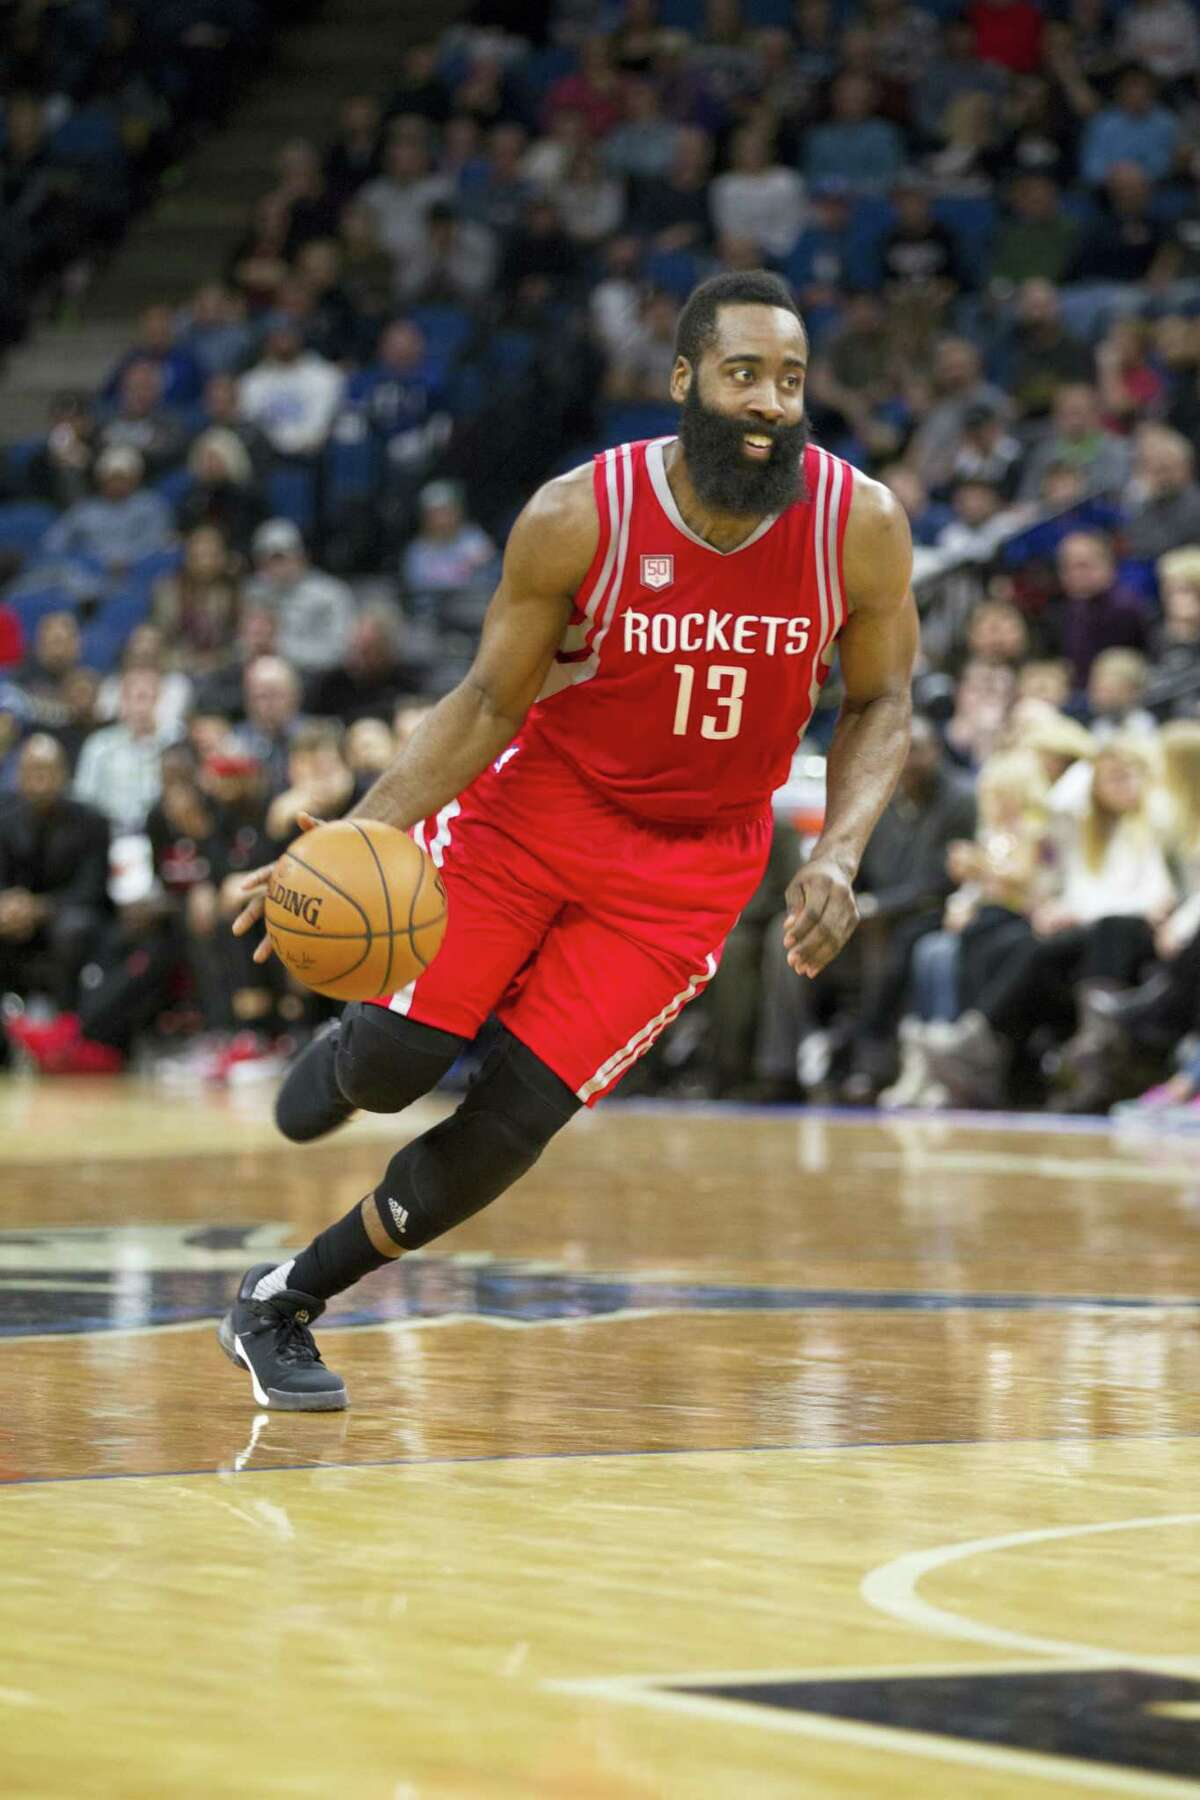 Houston Rockets guard James Harden (13) plays against Minnesota during an NBA basketball game on Saturday, Dec. 17, 2016 in Minneapolis.